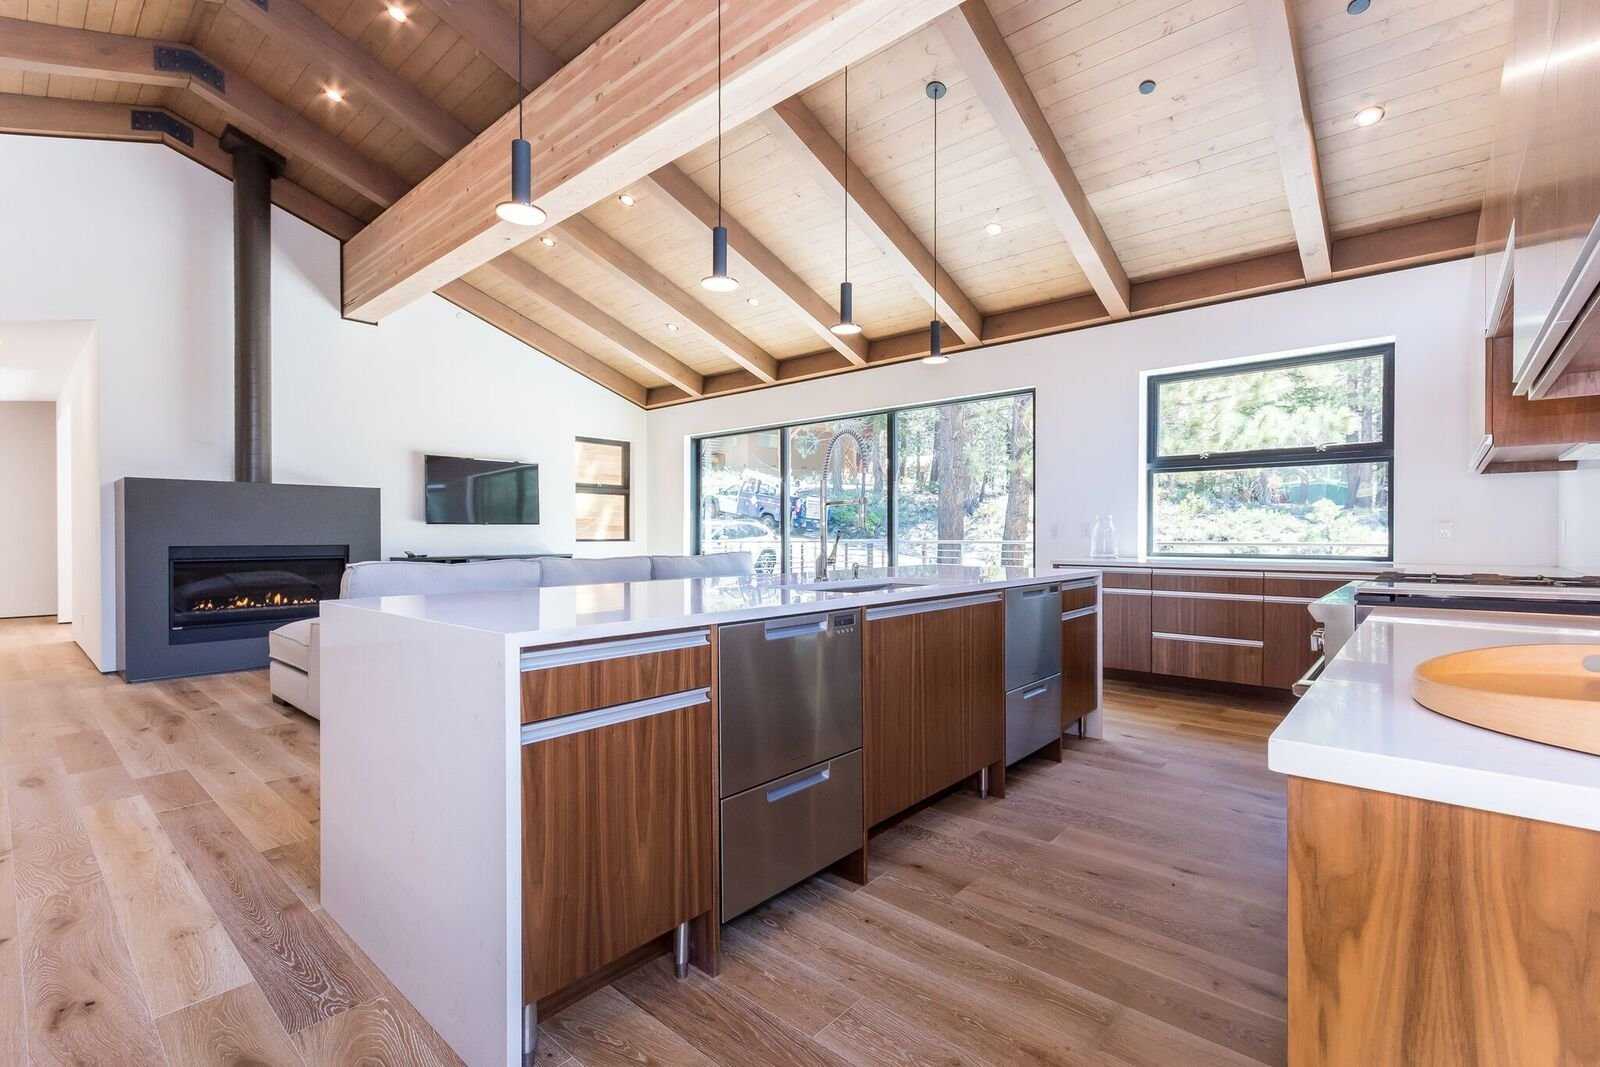 Kitchen, Quartzite Counter, Engineered Quartz Counter, Wood Cabinet, Ceiling Lighting, Pendant Lighting, Dishwasher, Undermount Sink, and Medium Hardwood Floor Dual dishdrawer units for holidays, large dinners, friends...  Mammoth Modern House 1